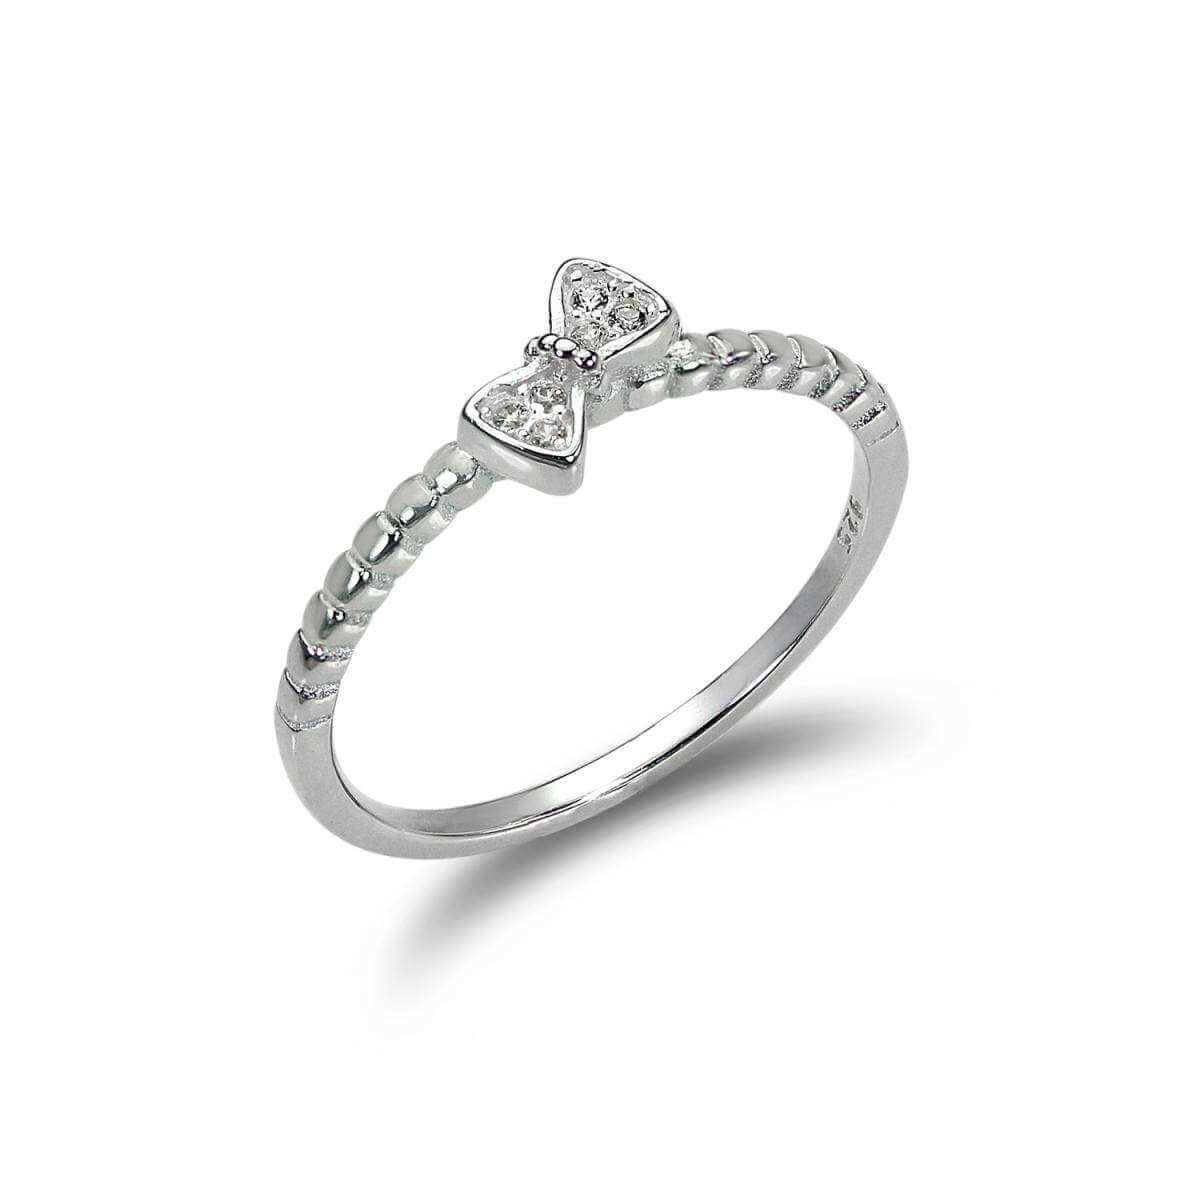 Sterling Silver 1mm Ring with CZ Crystal Bow - UK Size J -V